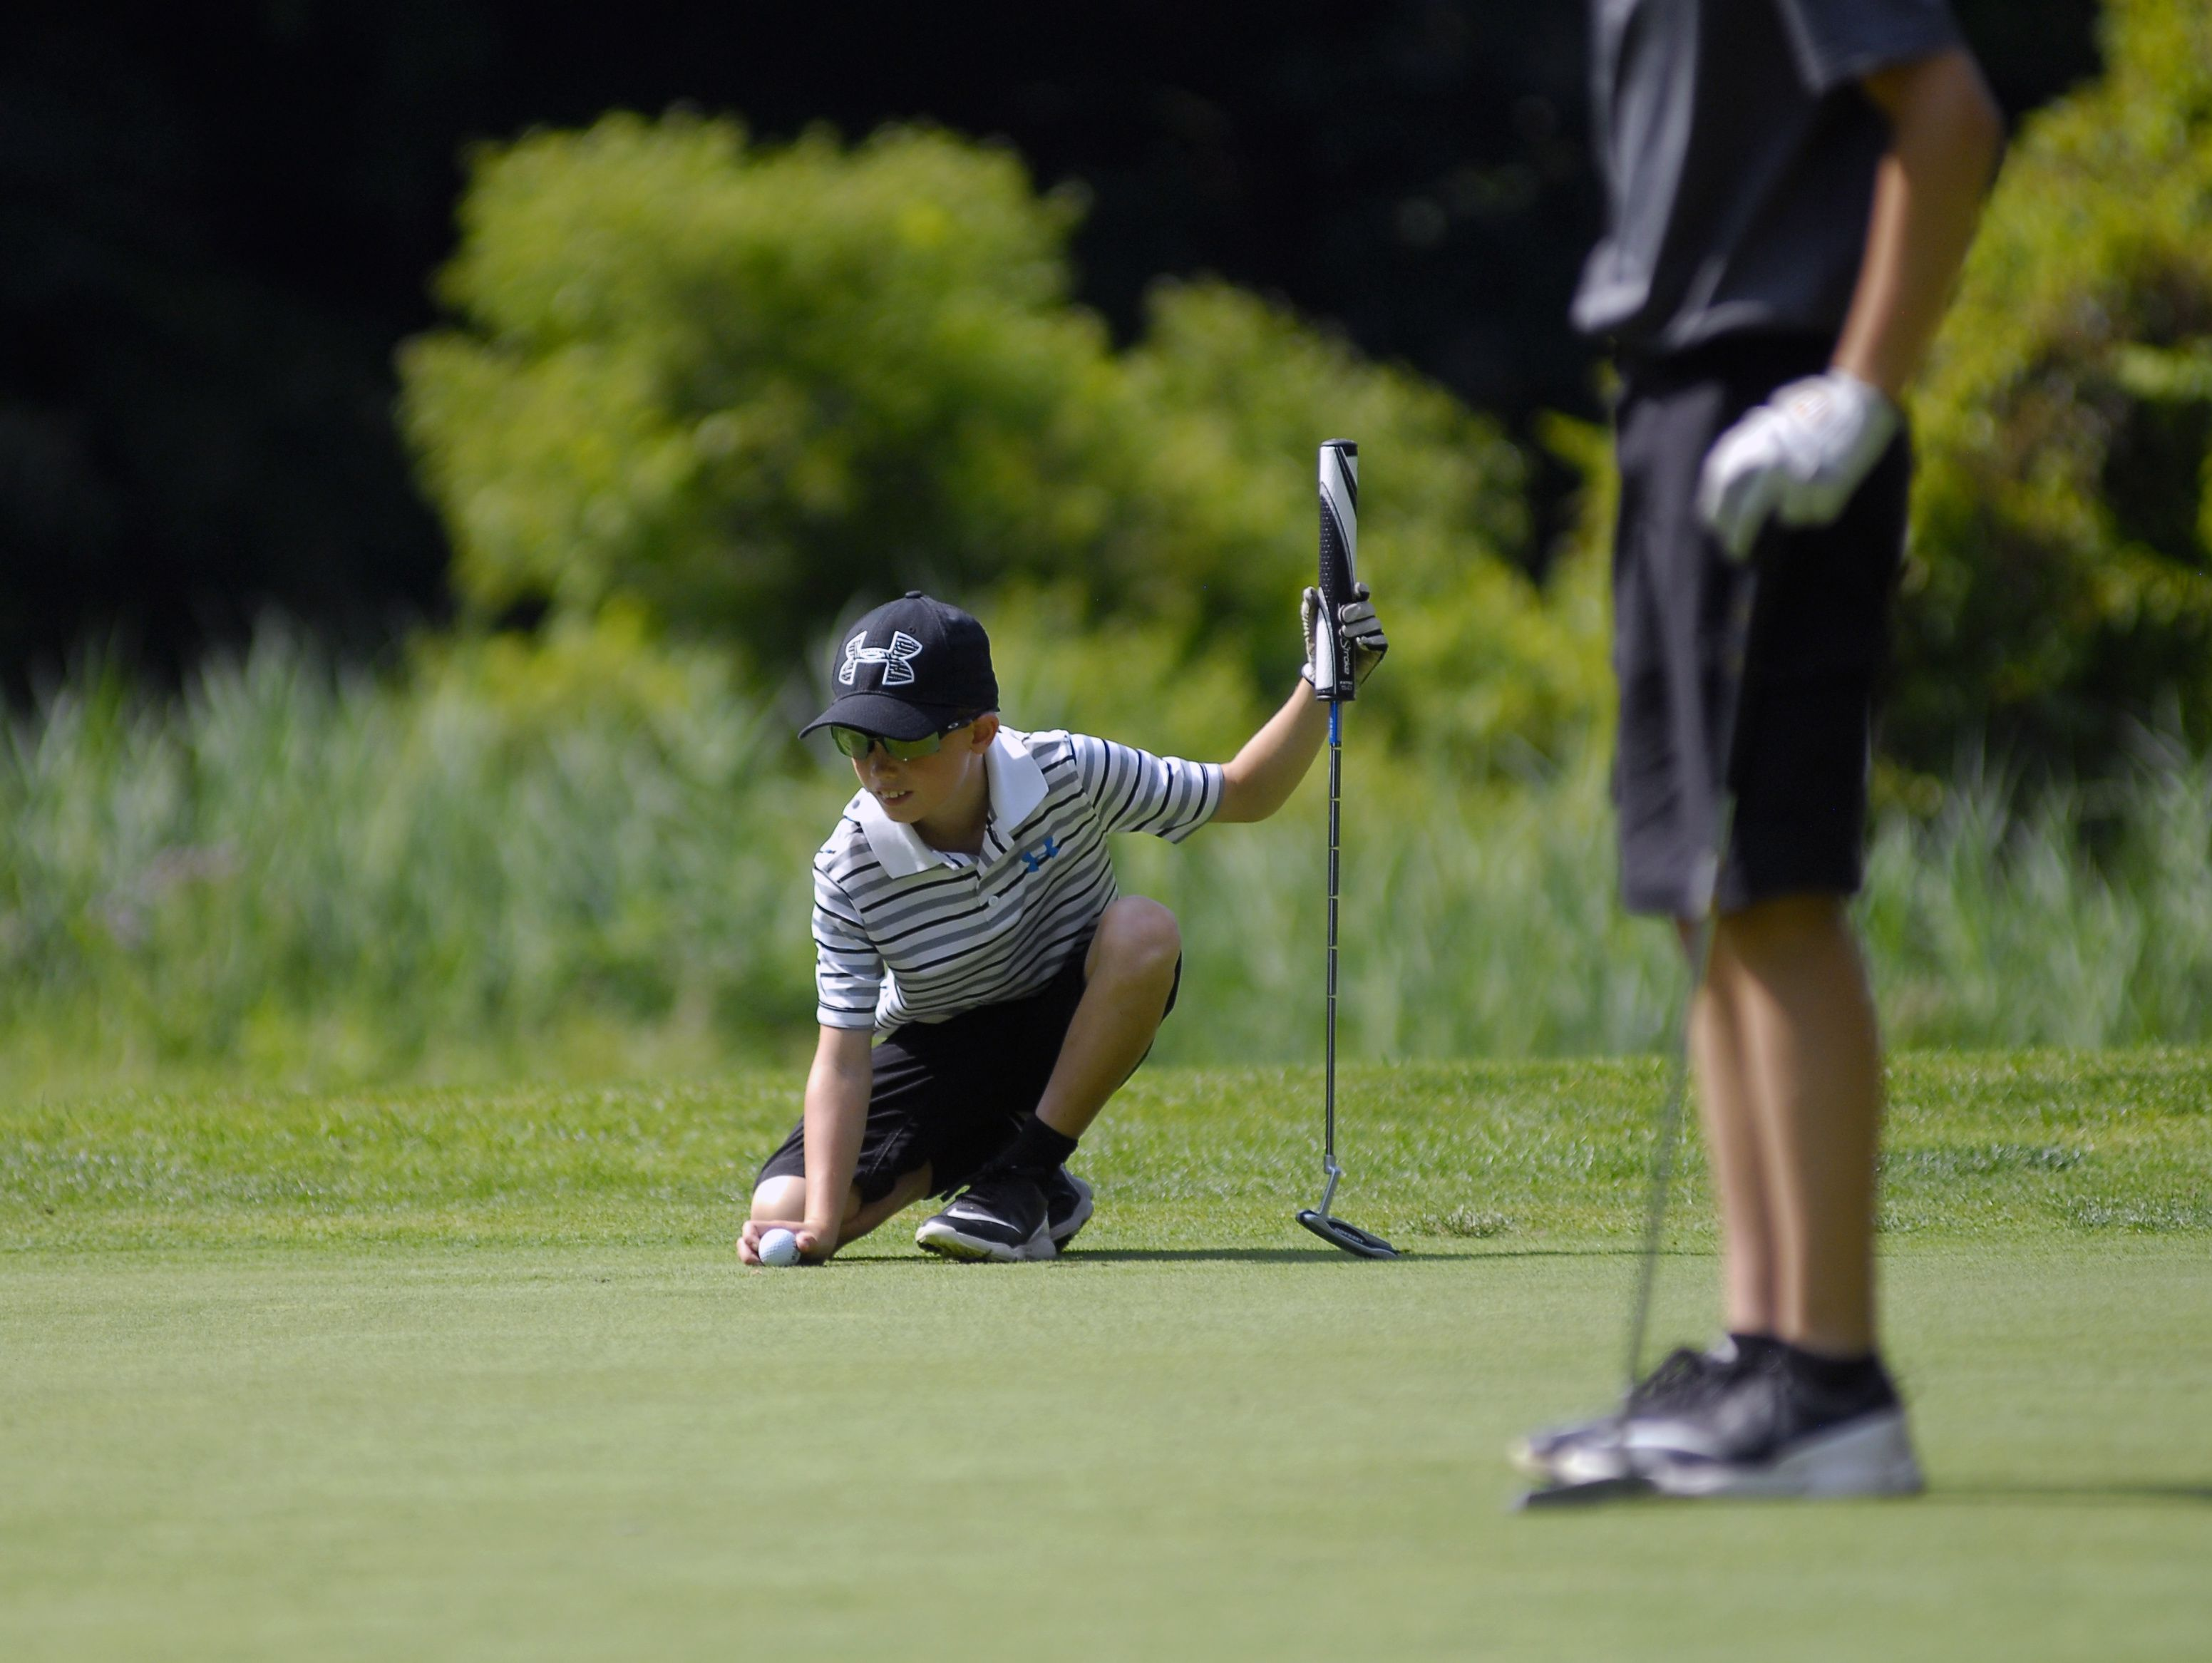 Kyren Bruno, 10, of Jeddo, lines up his putt Monday, Aug 1, during the Tournament of Champions at the Port Huron Elks Golf Course.